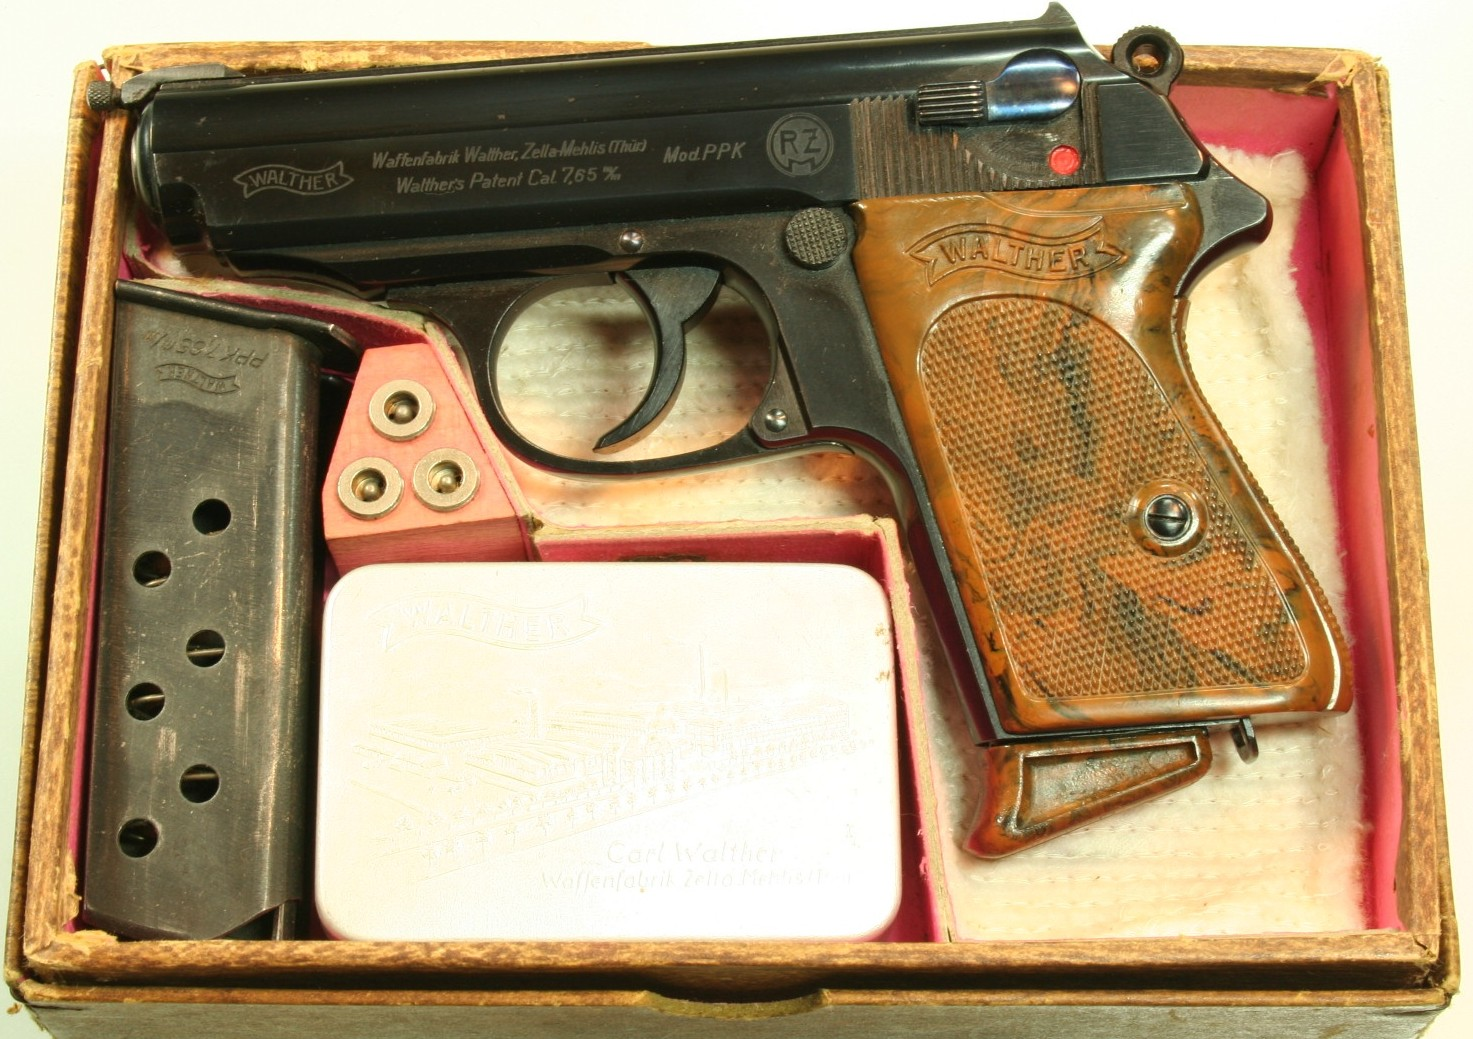 Walther_PPK_RZM_2